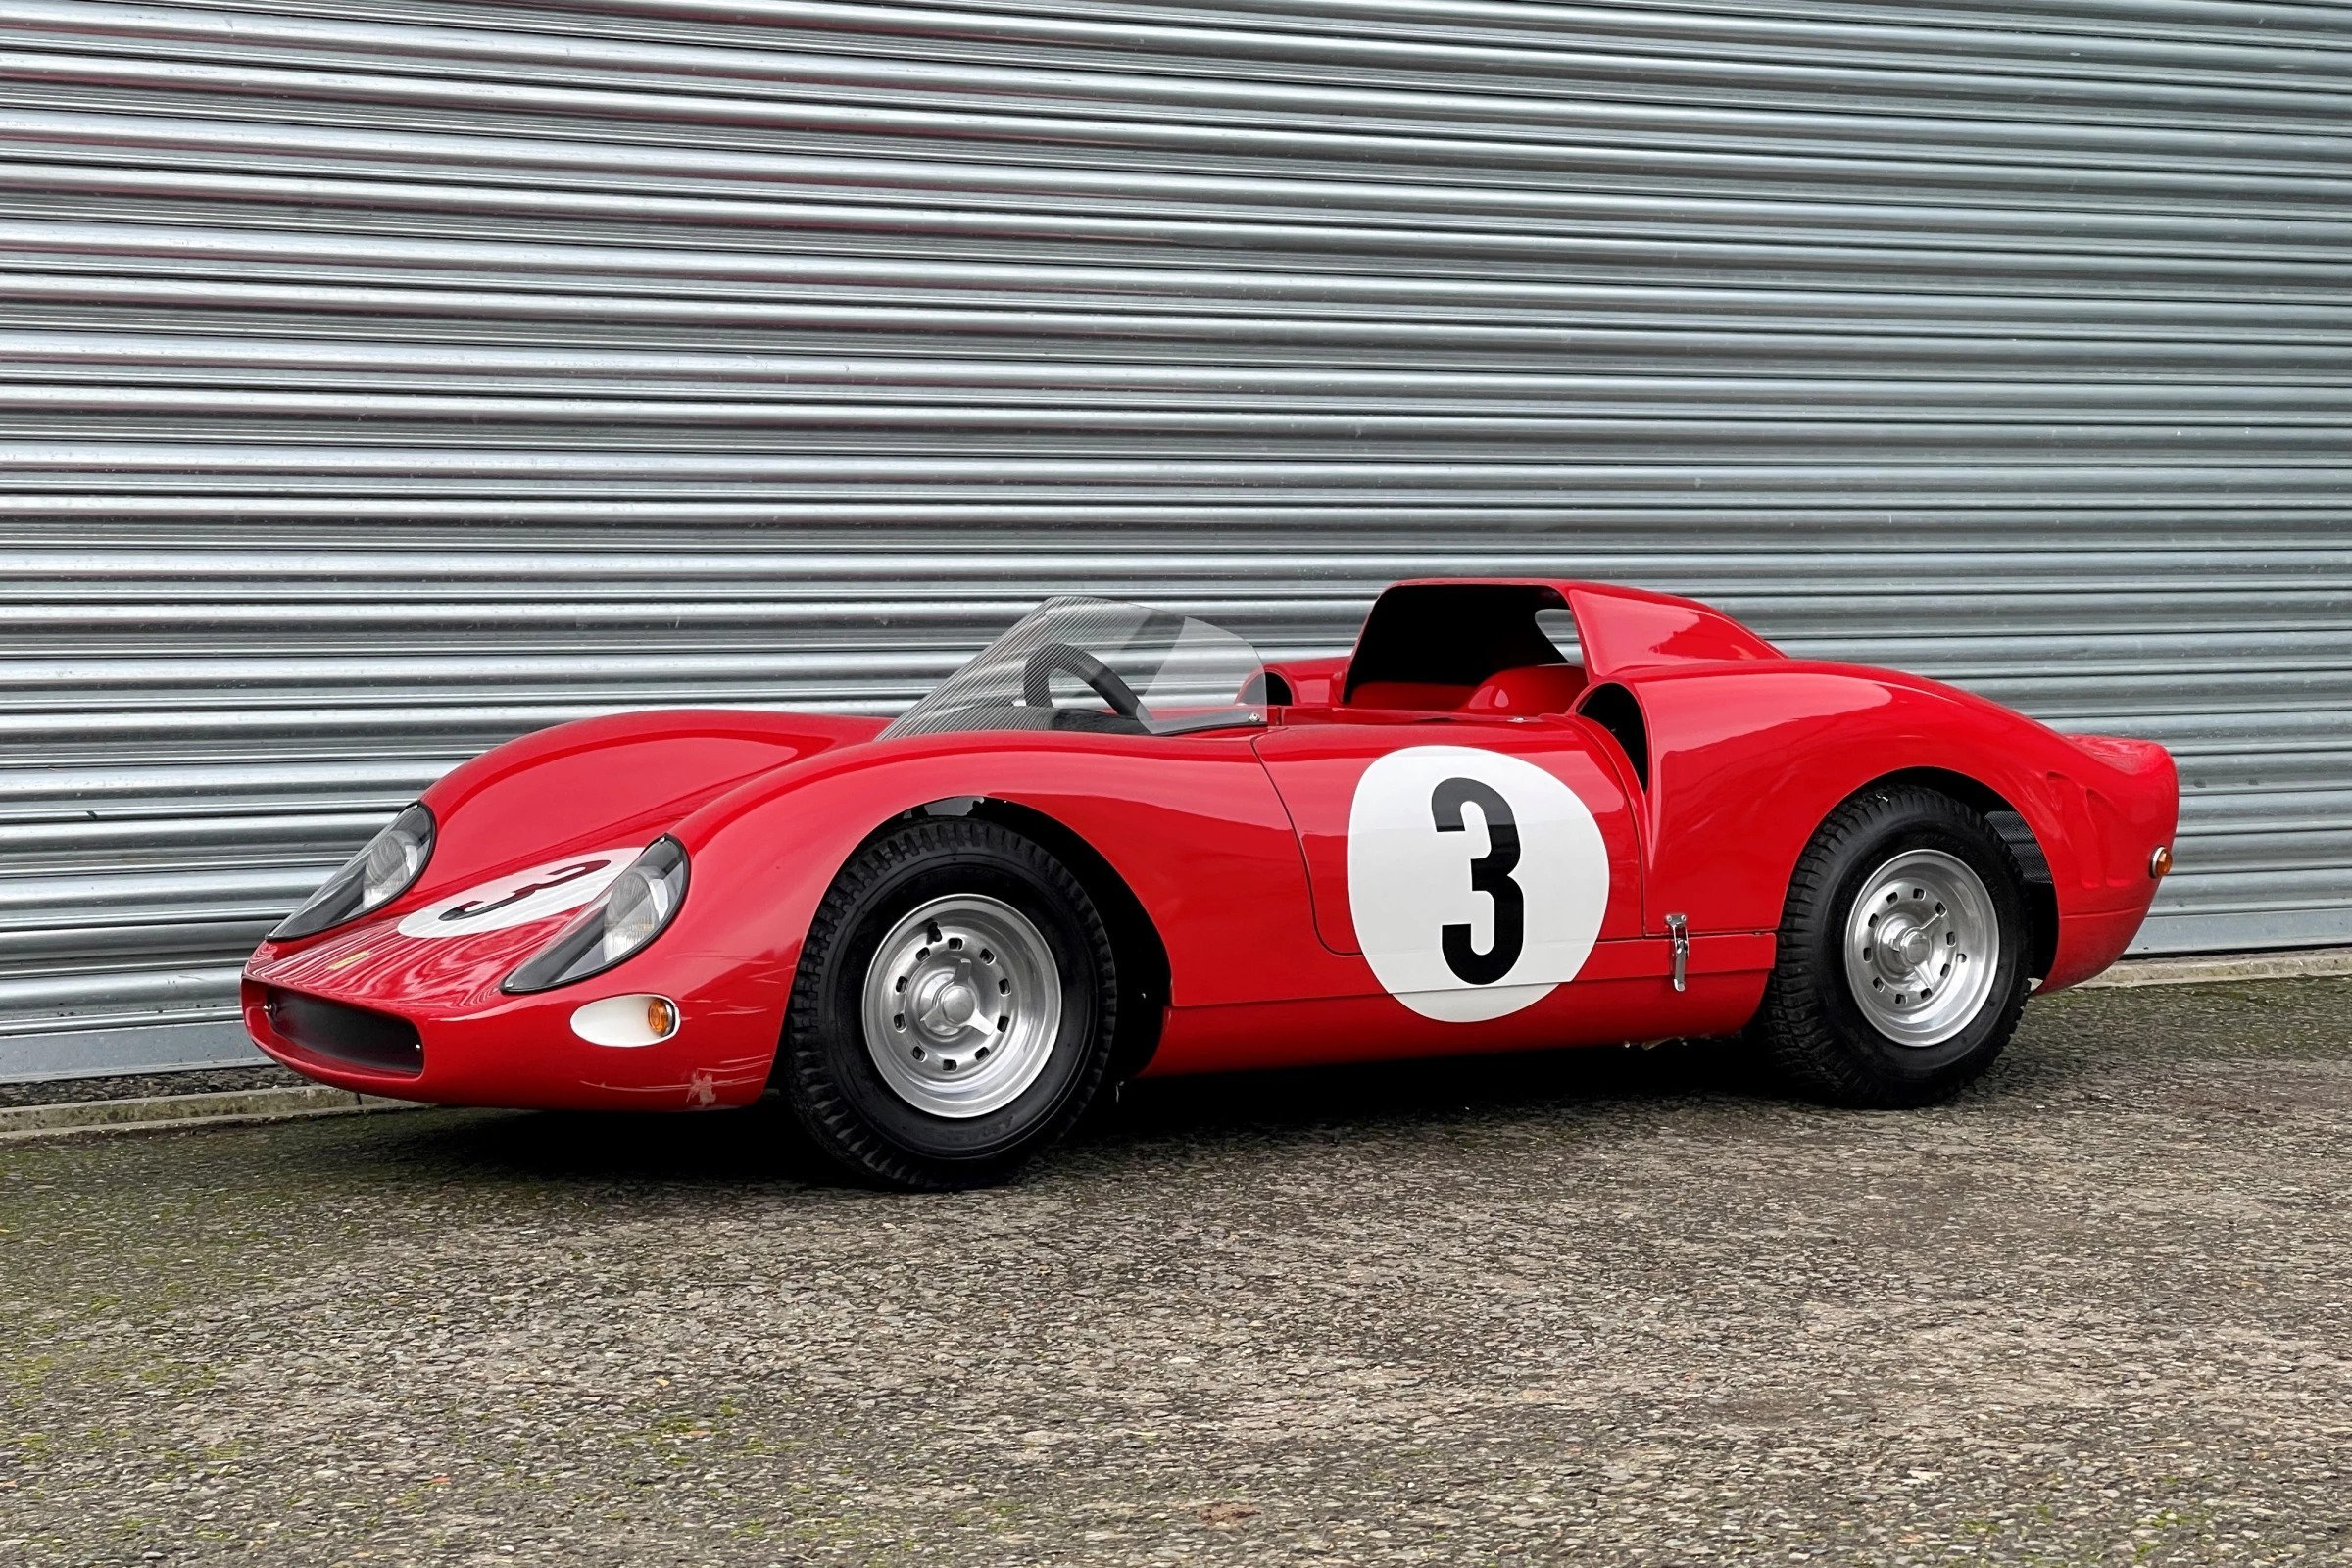 Childrens Ferrari Replica Sets A New Price Record At Paris